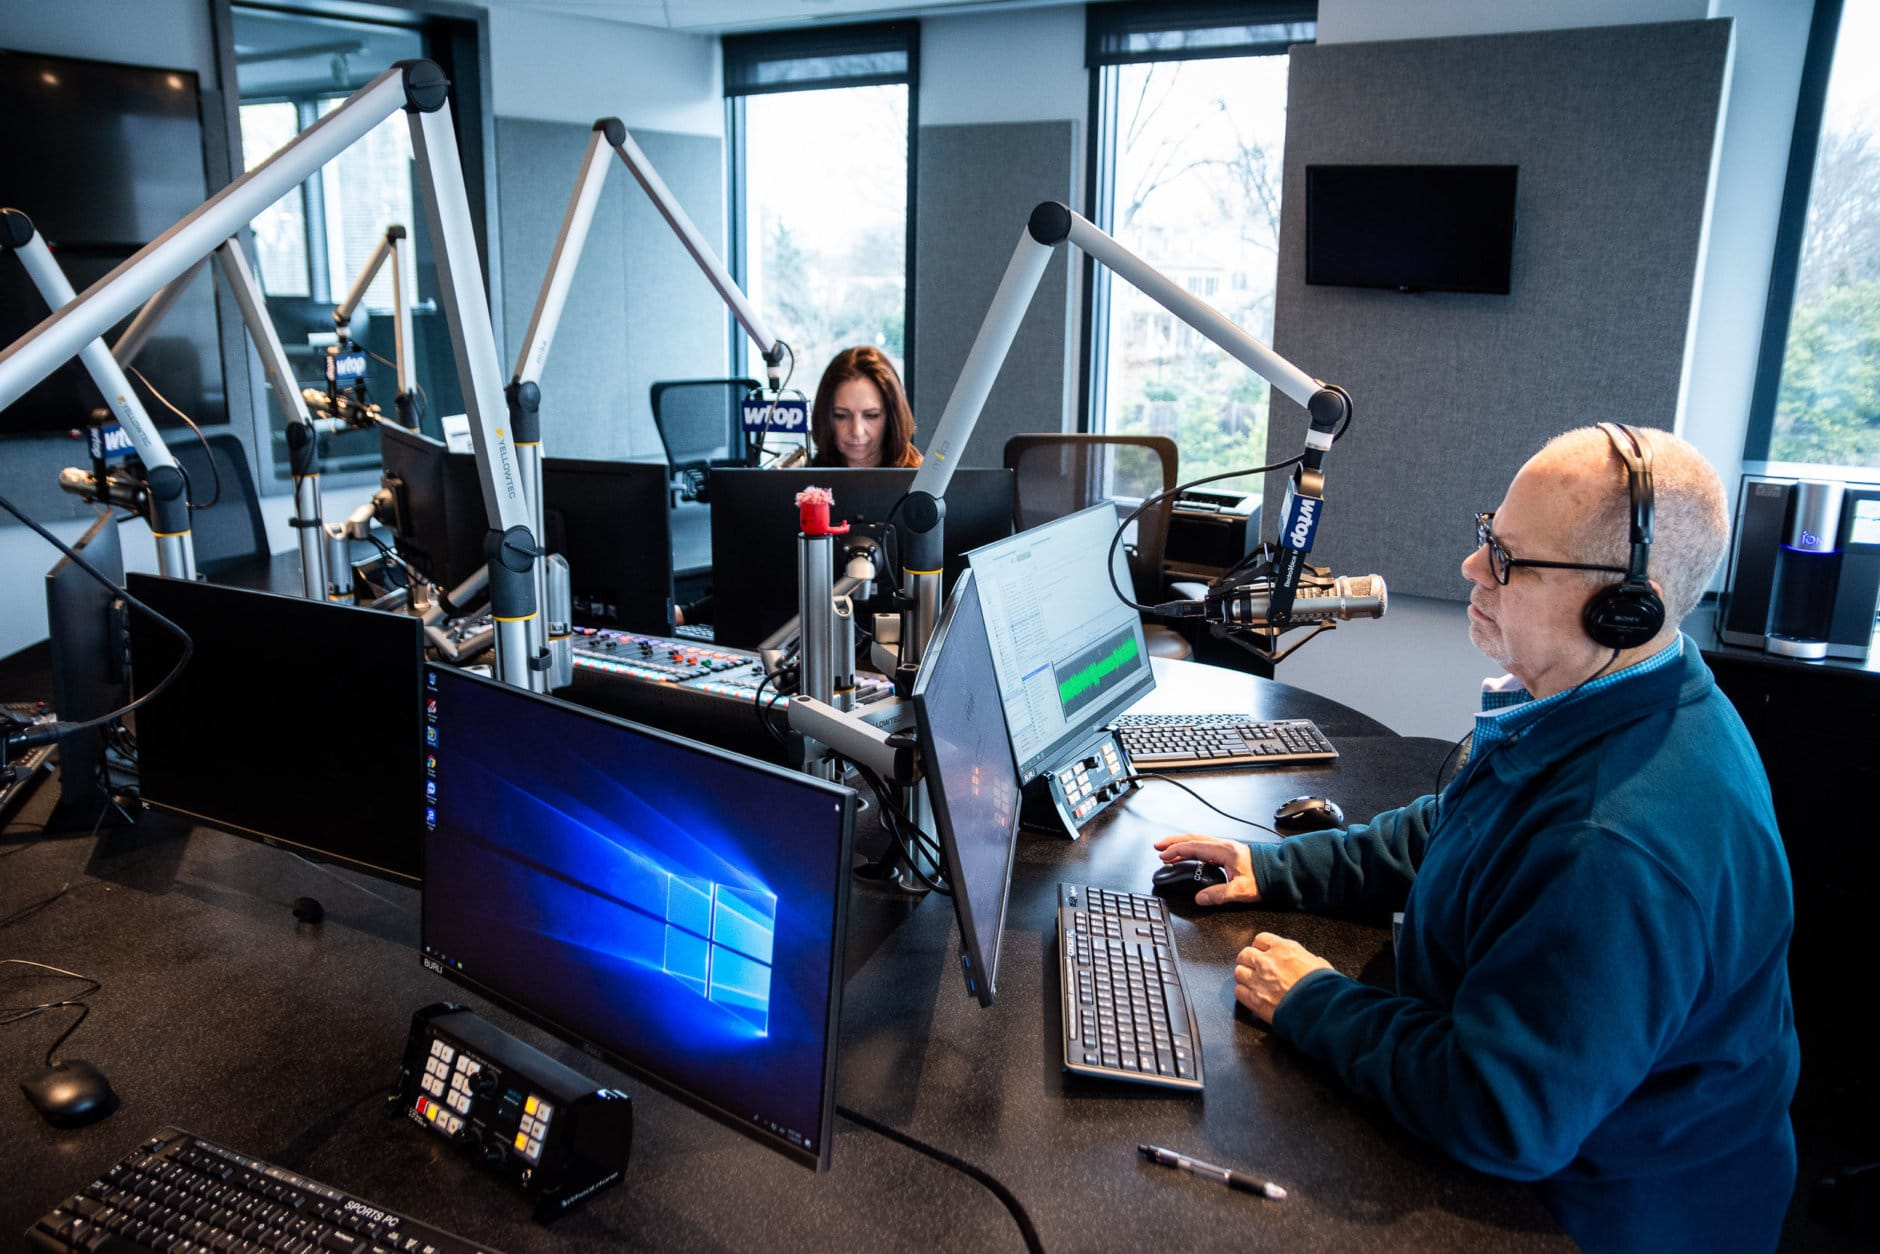 Bruce Alan and Joan Jones — the voices of WTOP during morning rush hour — conduct an off-air practice run from the new main studio on 5425 Wisconsin Avenue. While WTOP's broadcast format remains the same despite the move, the new studio debuts state-of-the-art software and equipment, assembled and tested over the course of months to ensure a seamless transition from the old building at midnight on Feb. 4. (WTOP/Alejandro Alvarez)